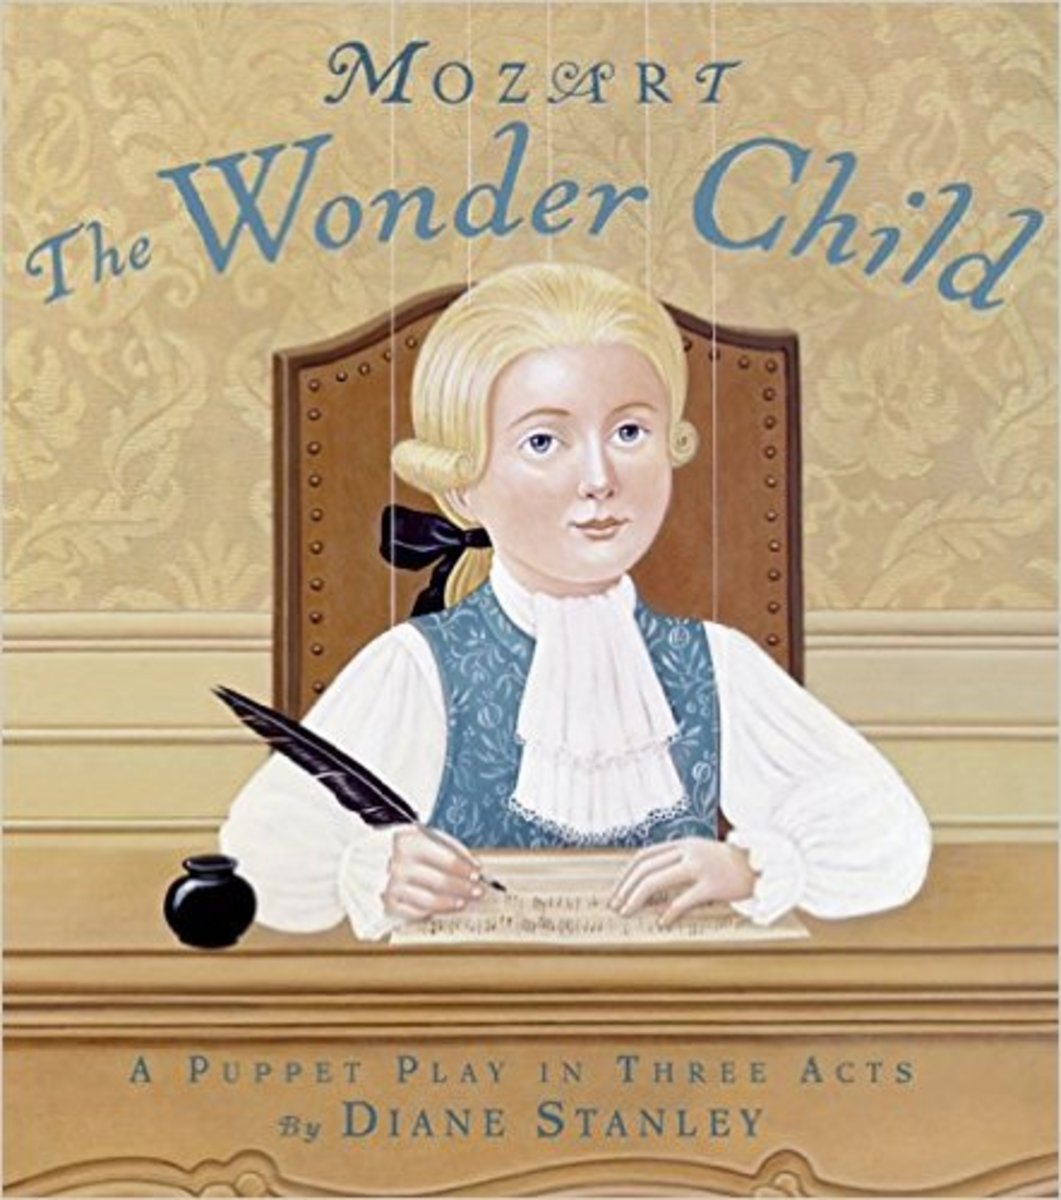 Mozart: The Wonder Child: A Puppet Play in Three Acts by Diane Stanley - Image credit: amazon.com